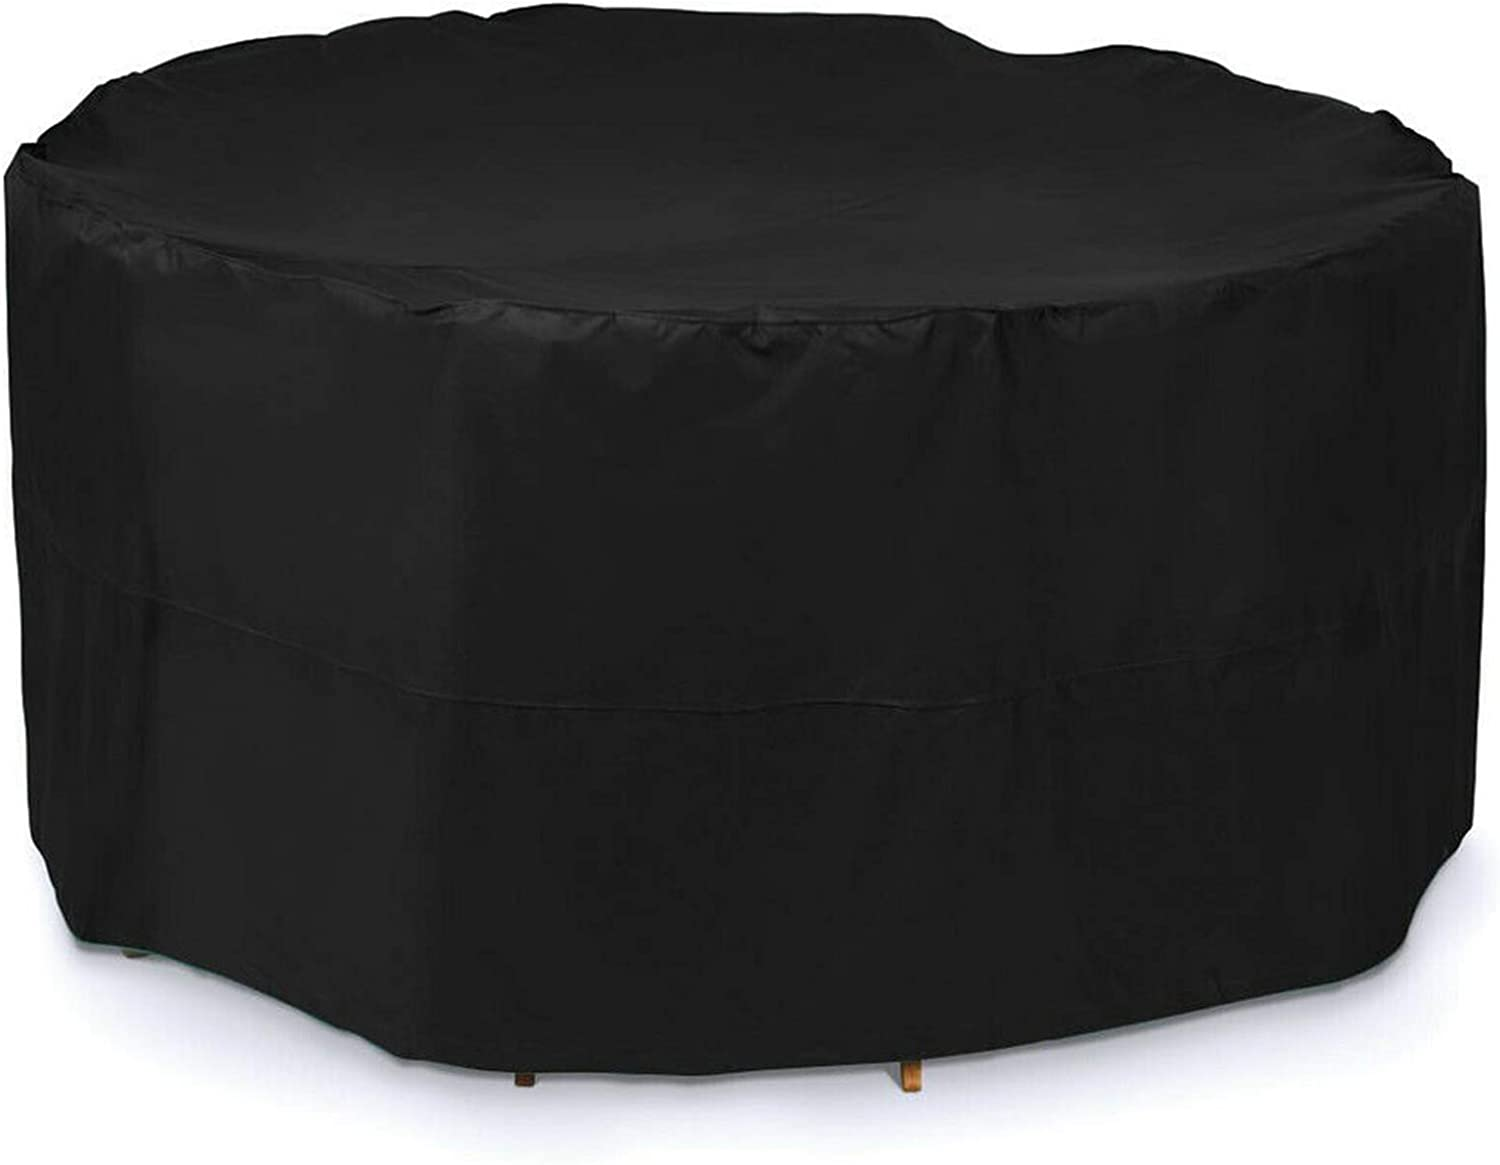 Patio Furniture Covers Round 89x39in, Garden Furniture Covers Waterproof, Furniture Covers for Outdoor Seating Large, Water Resistant Fabric, Anti-UV, for All Weathers